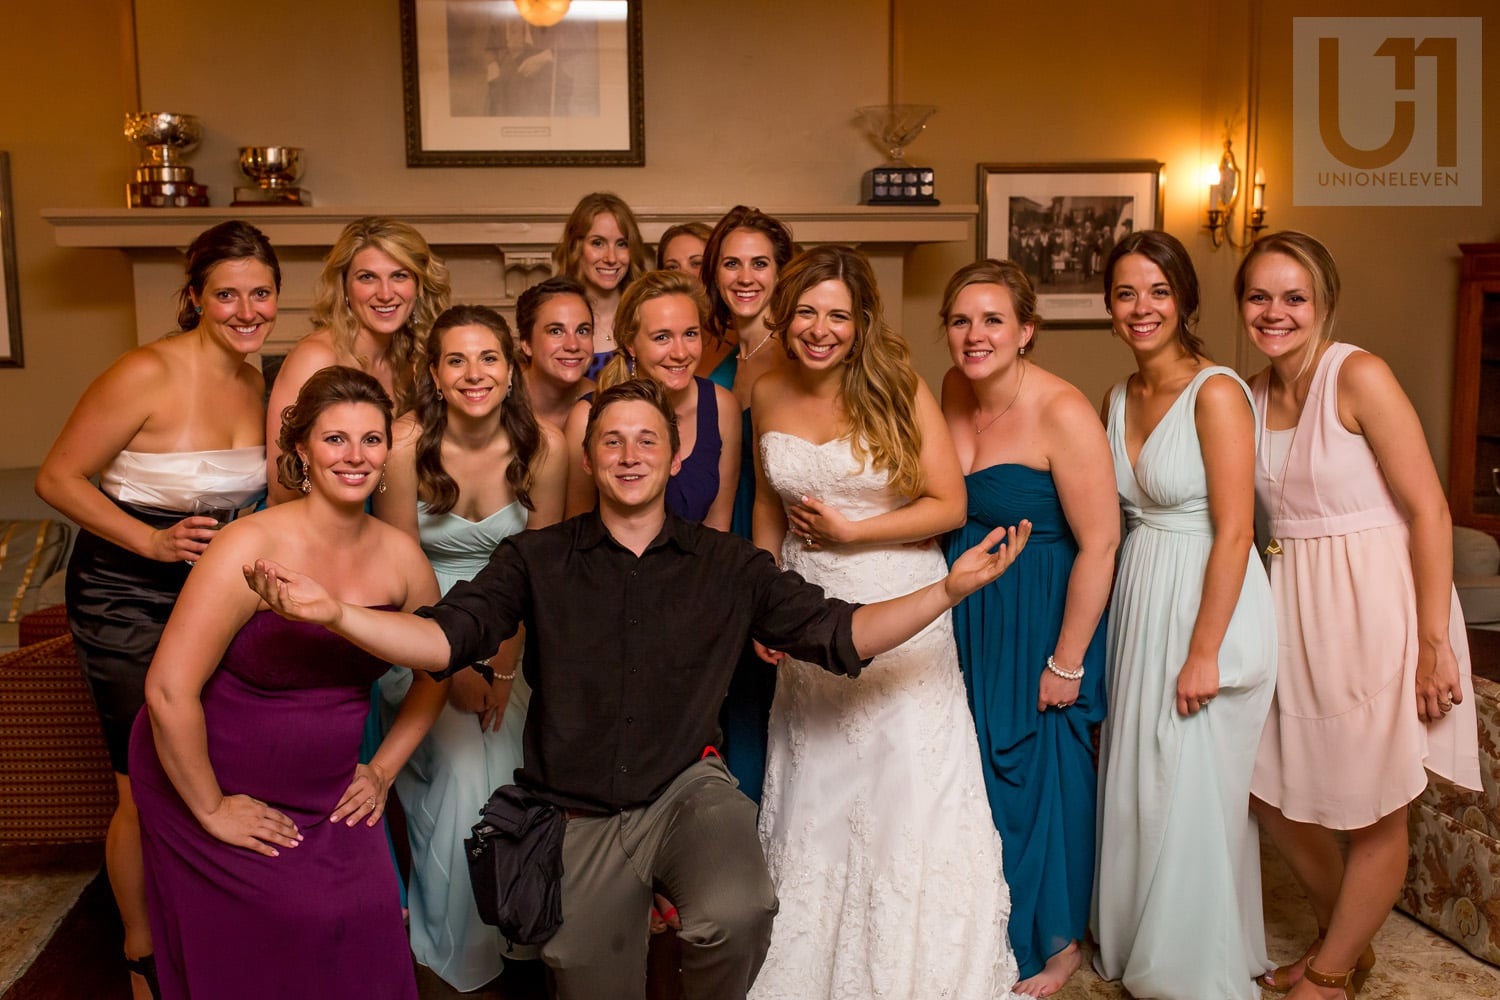 photographer kneeling, surrounded by bride, bridesmaids and female guests at wedding reception in Gatineau